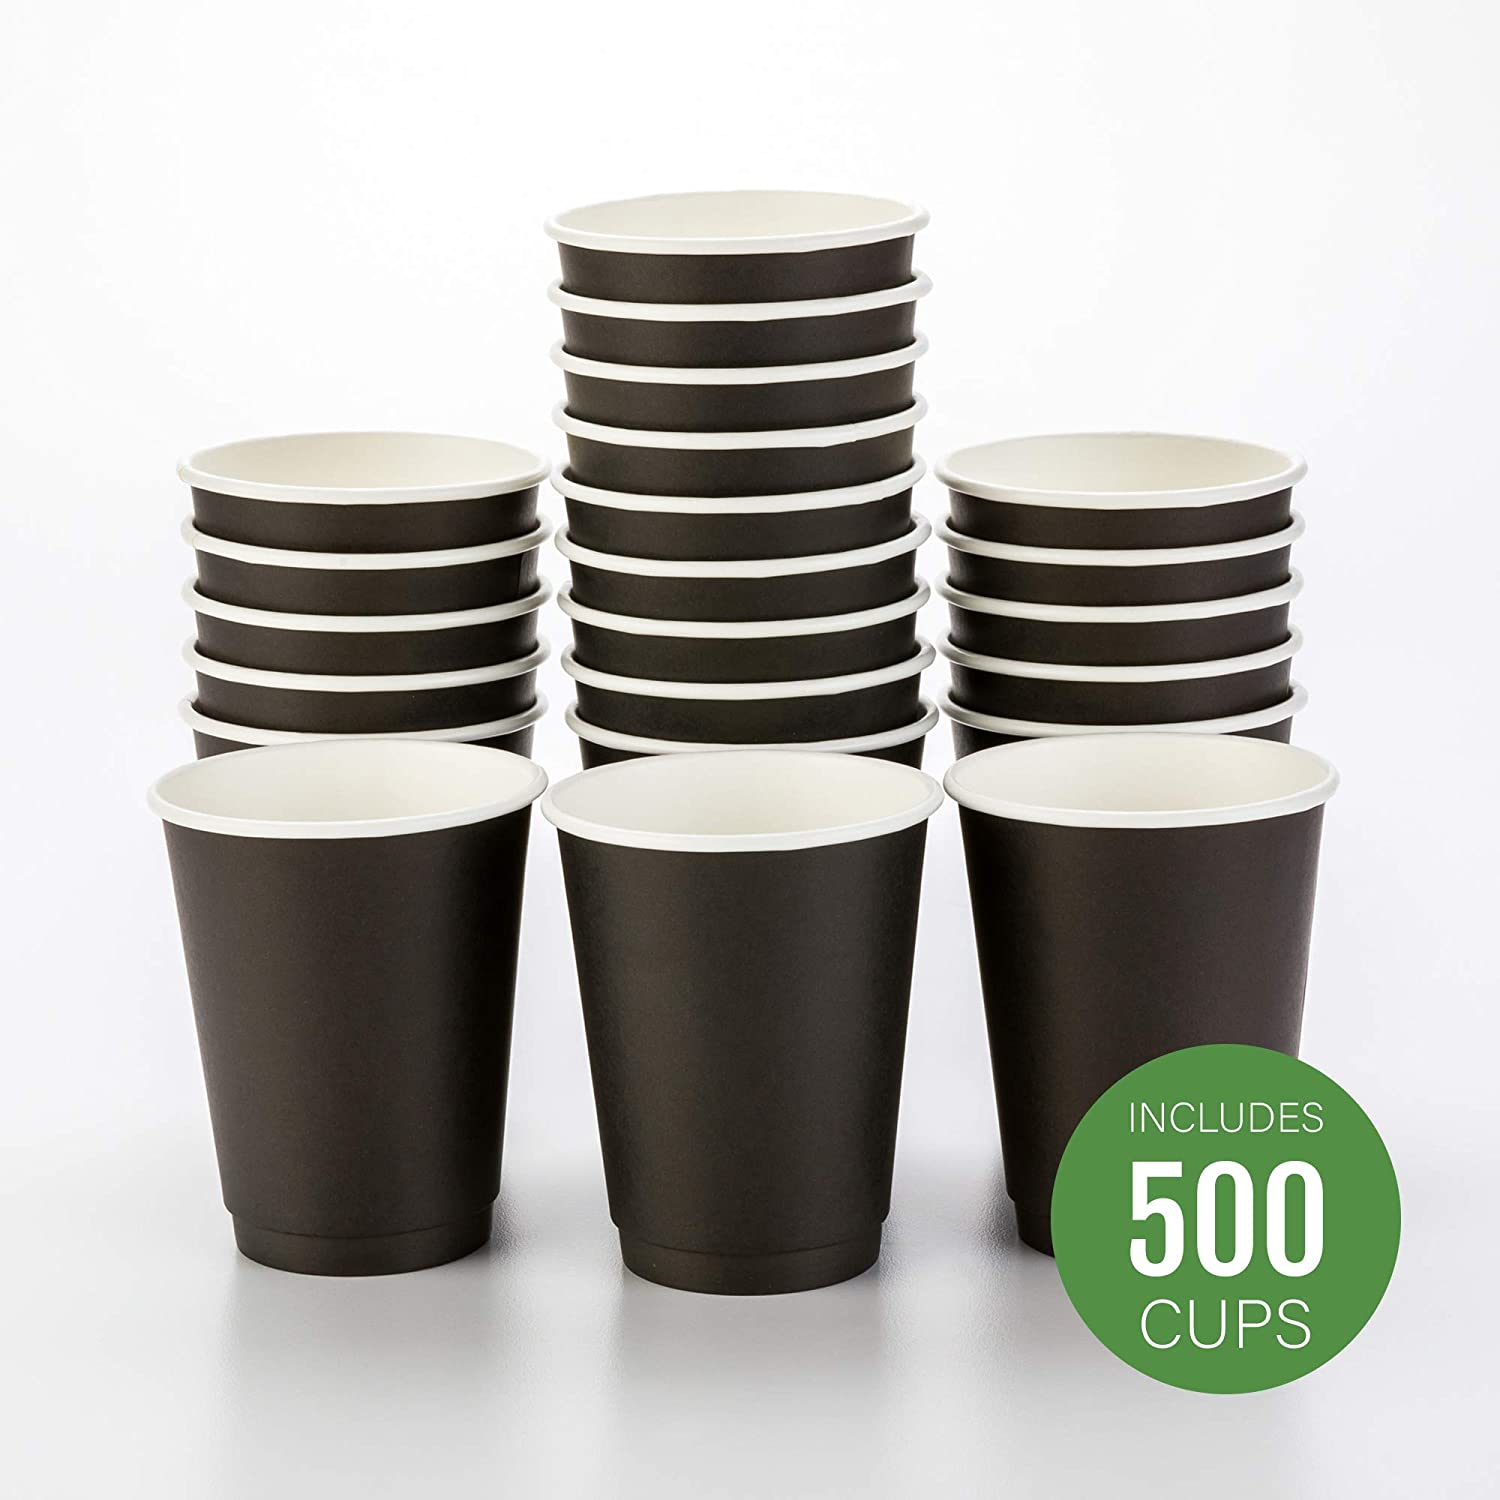 500-CT Disposable Black 12-oz Hot Beverage Cups with Double Wall Design: No Need for Sleeves - Perfect for Cafes - Eco Friendly Recyclable Paper - Insulated - Wholesale Takeout Coffee Cup